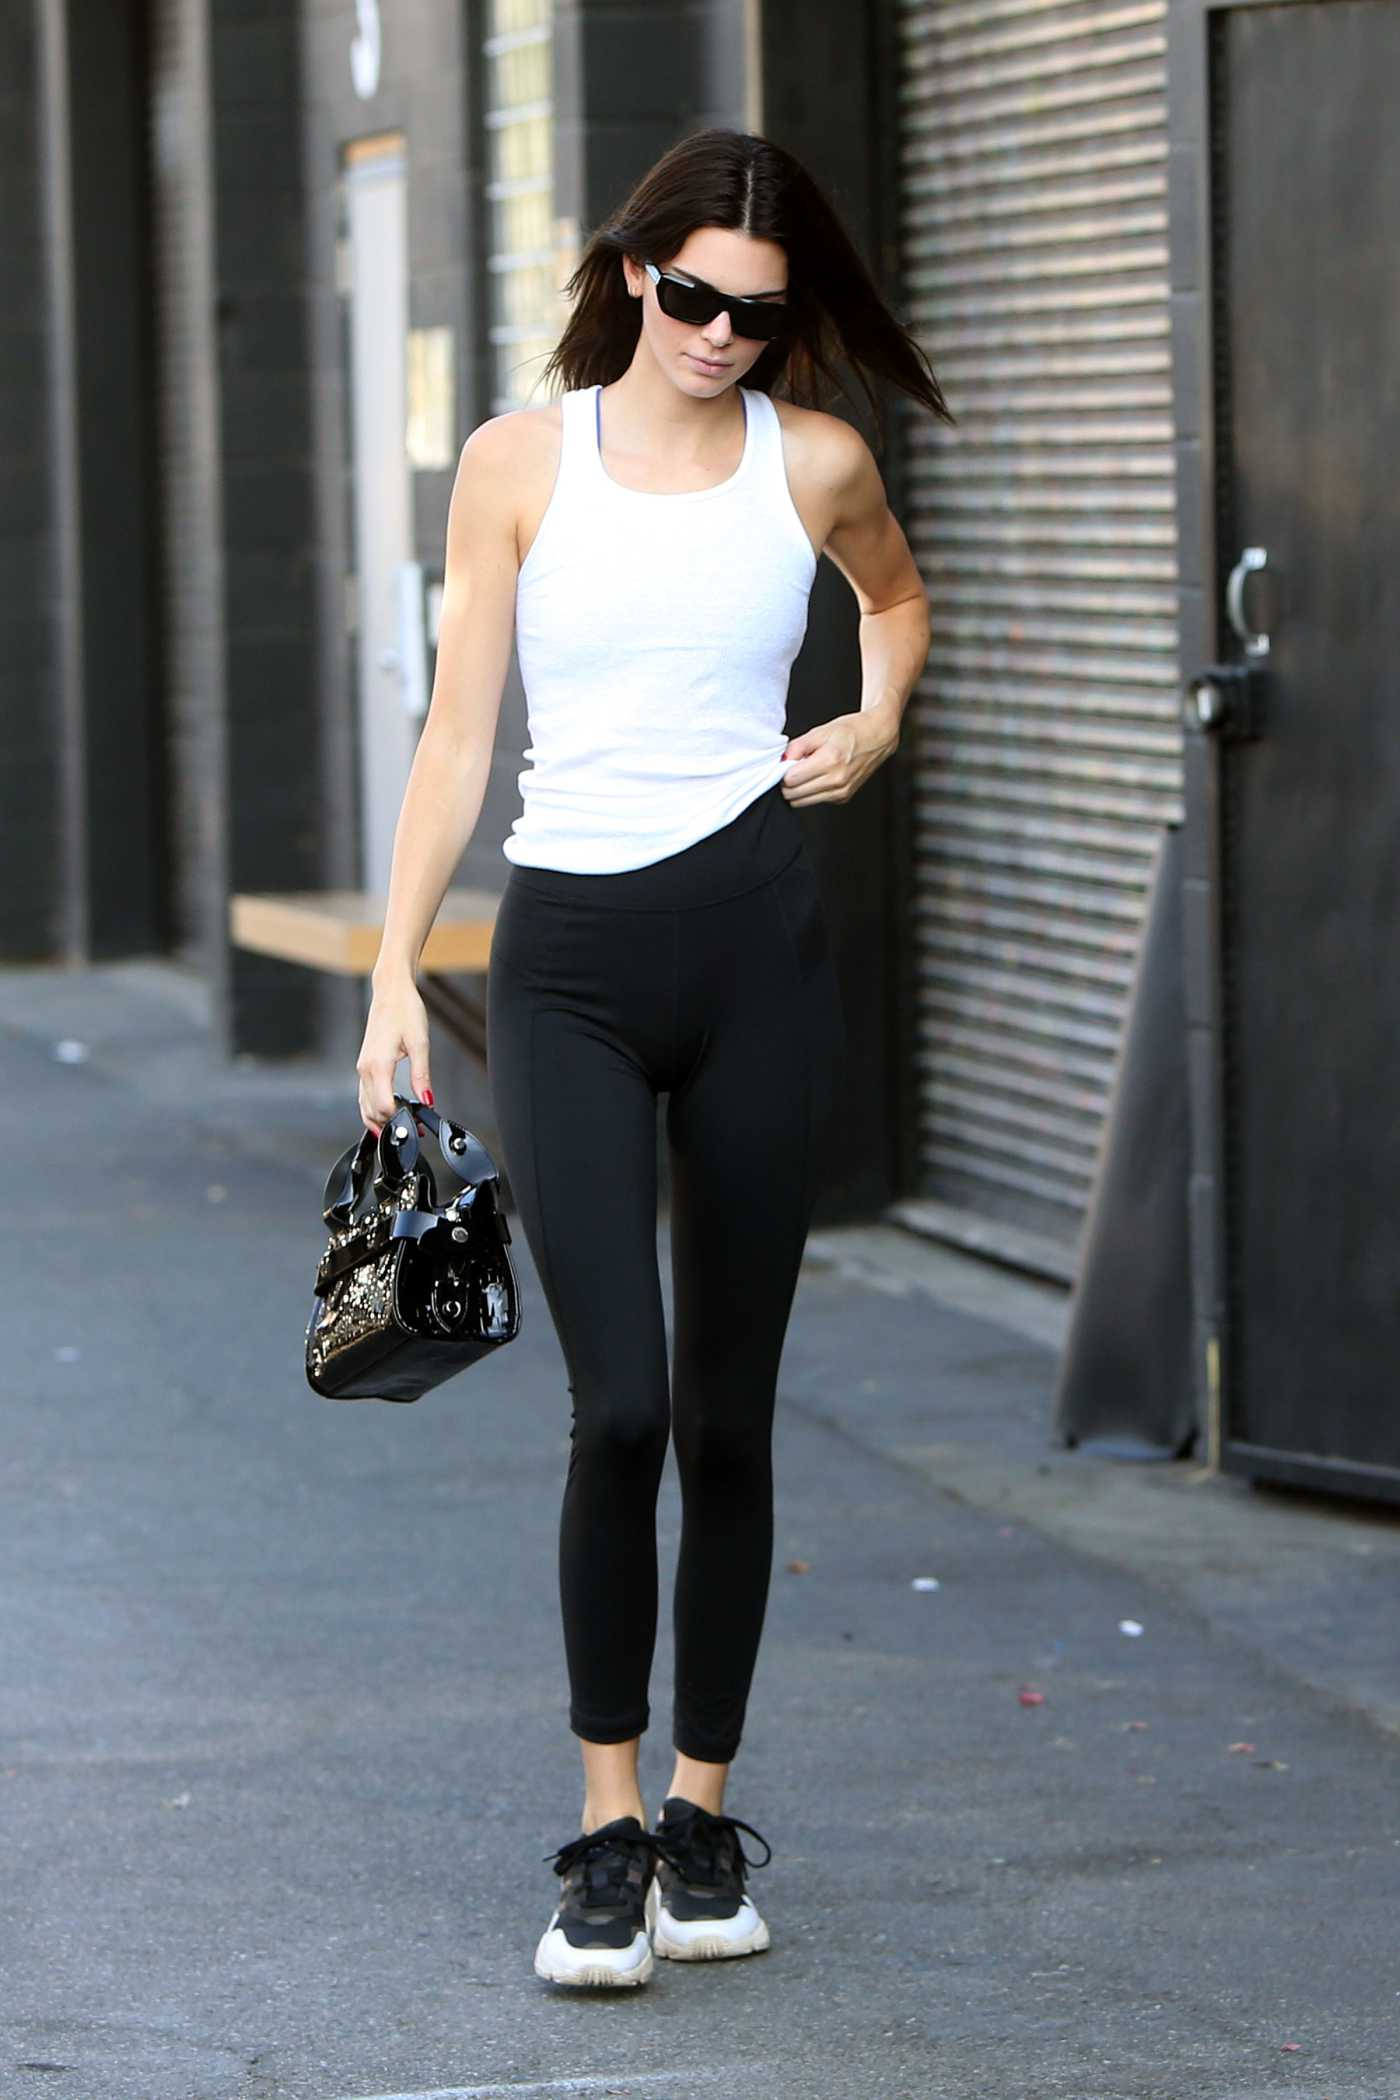 Kendall Jenner in a White Tank Top Was Seen Out in Los Angeles 10/09/2019